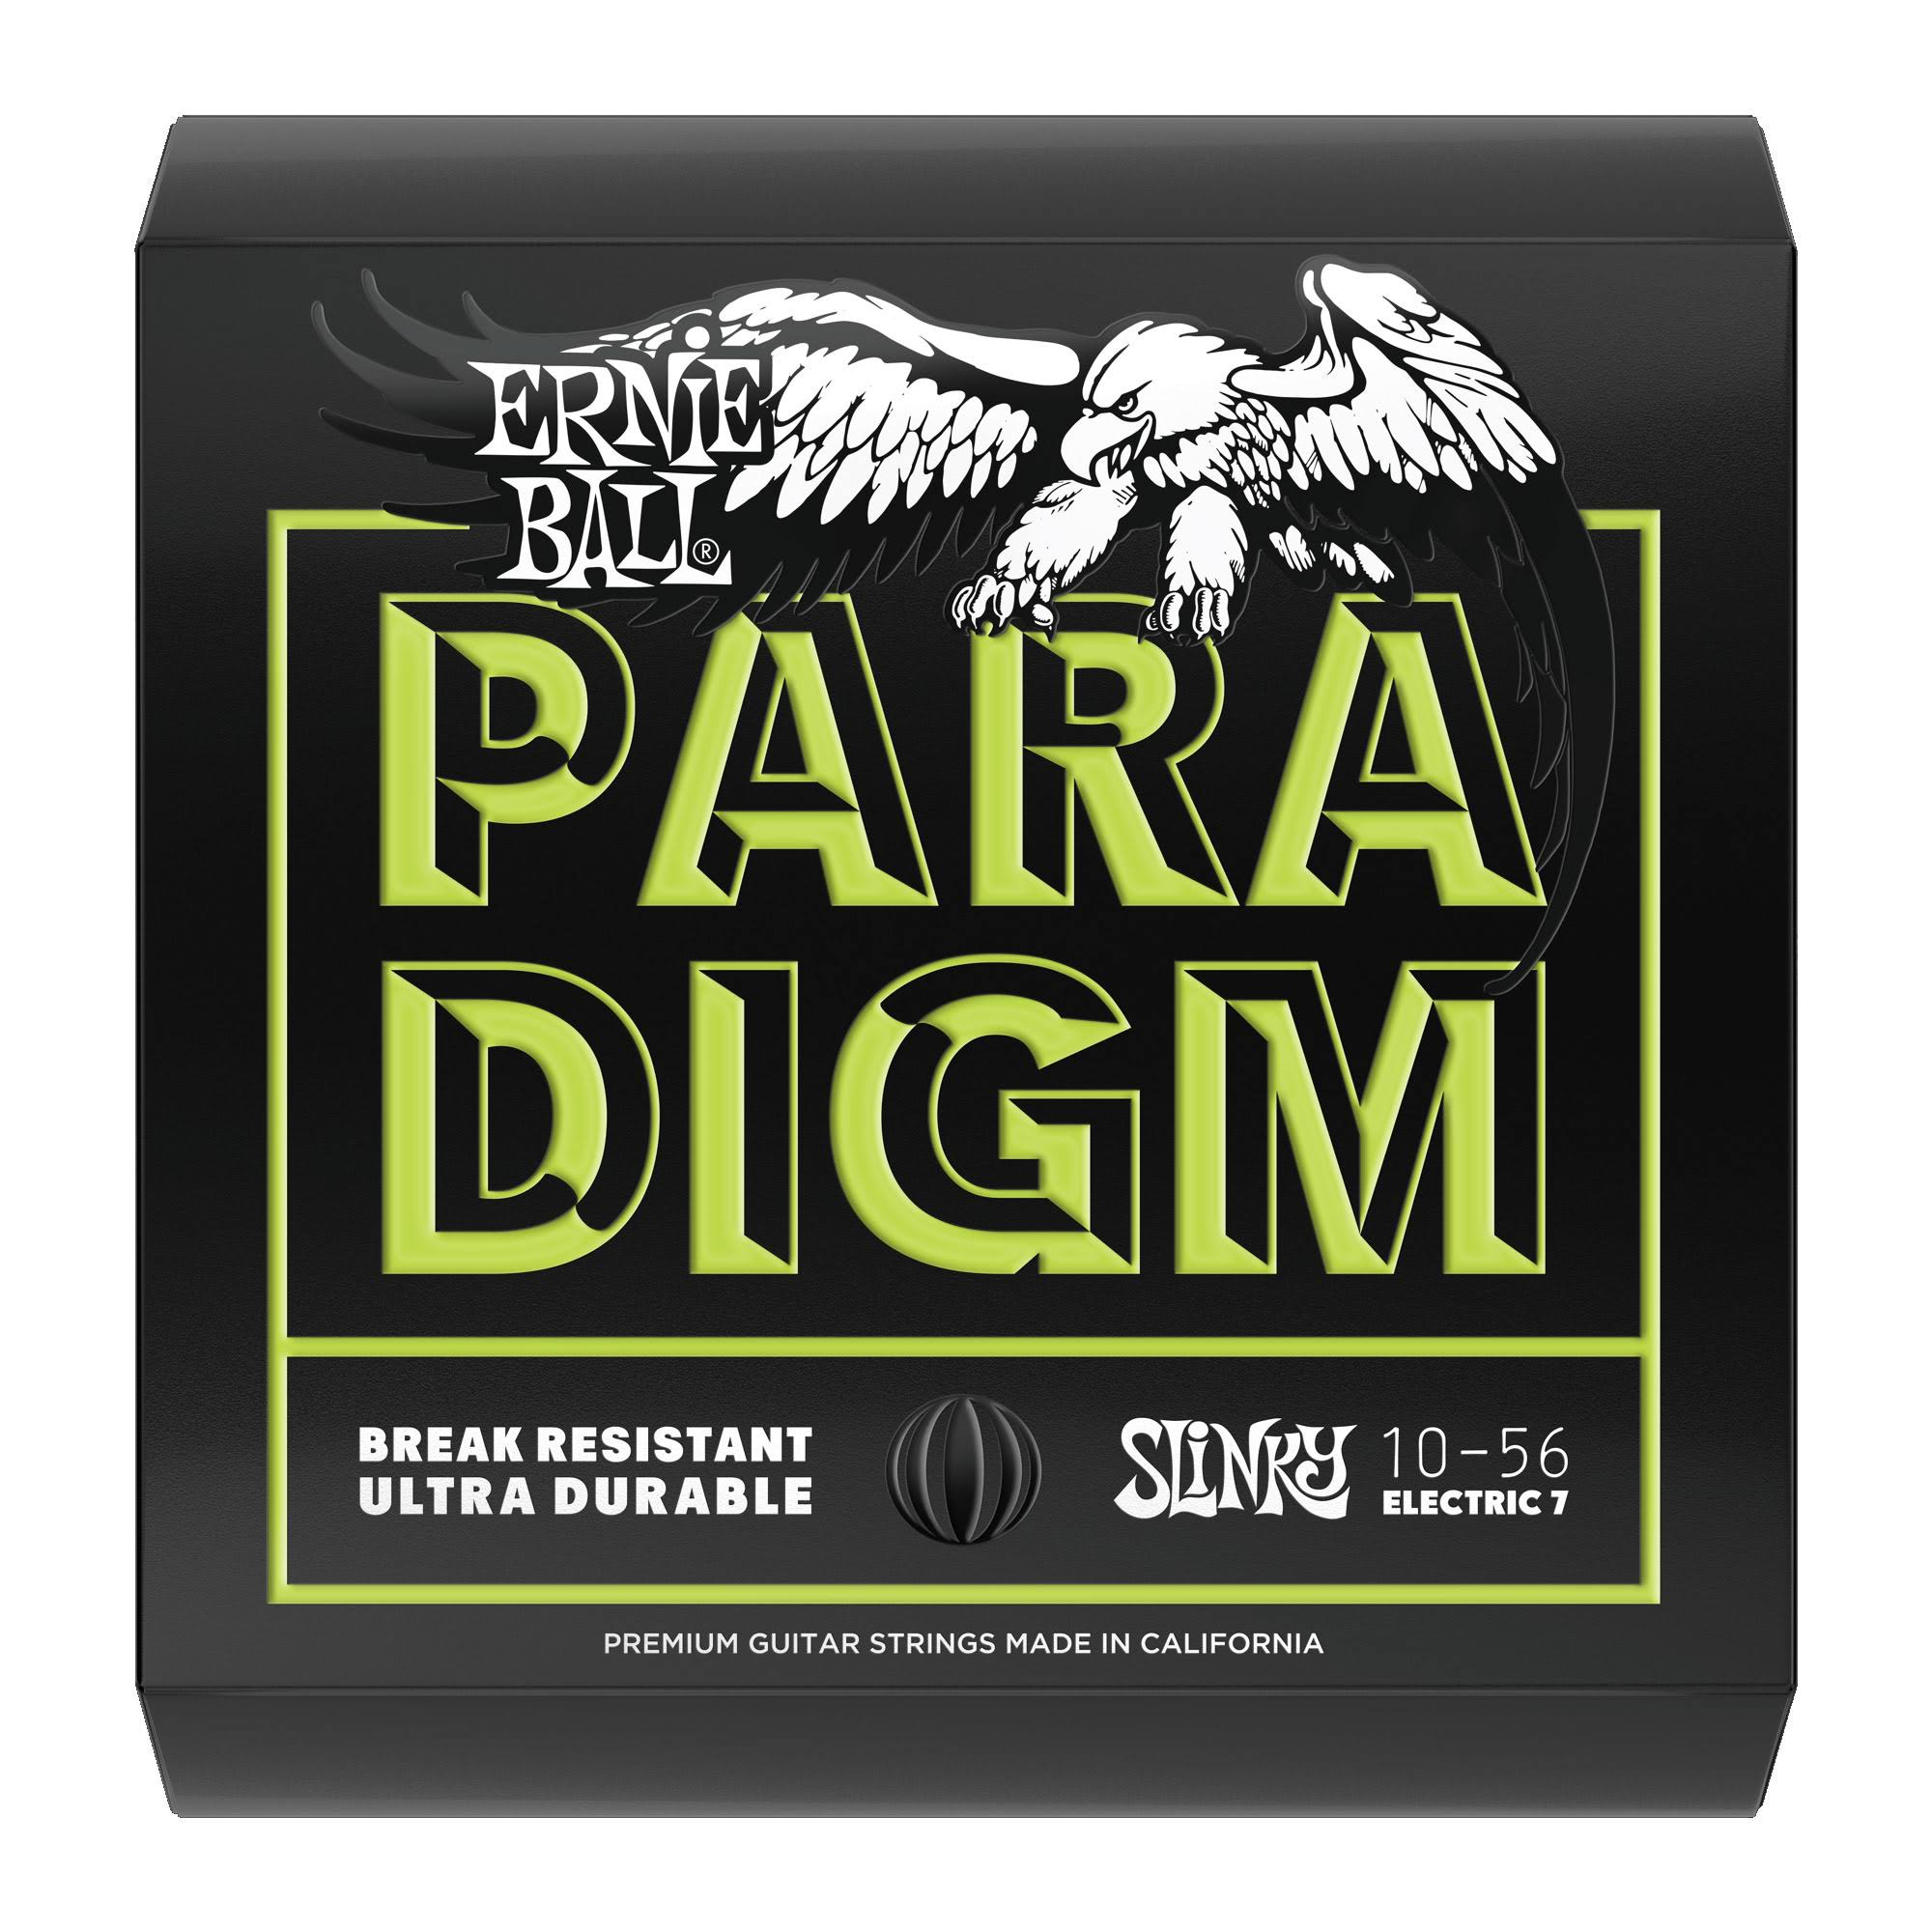 Ernie Ball 10/56 Paradigm Electric Guitar String - Regular Slinky//